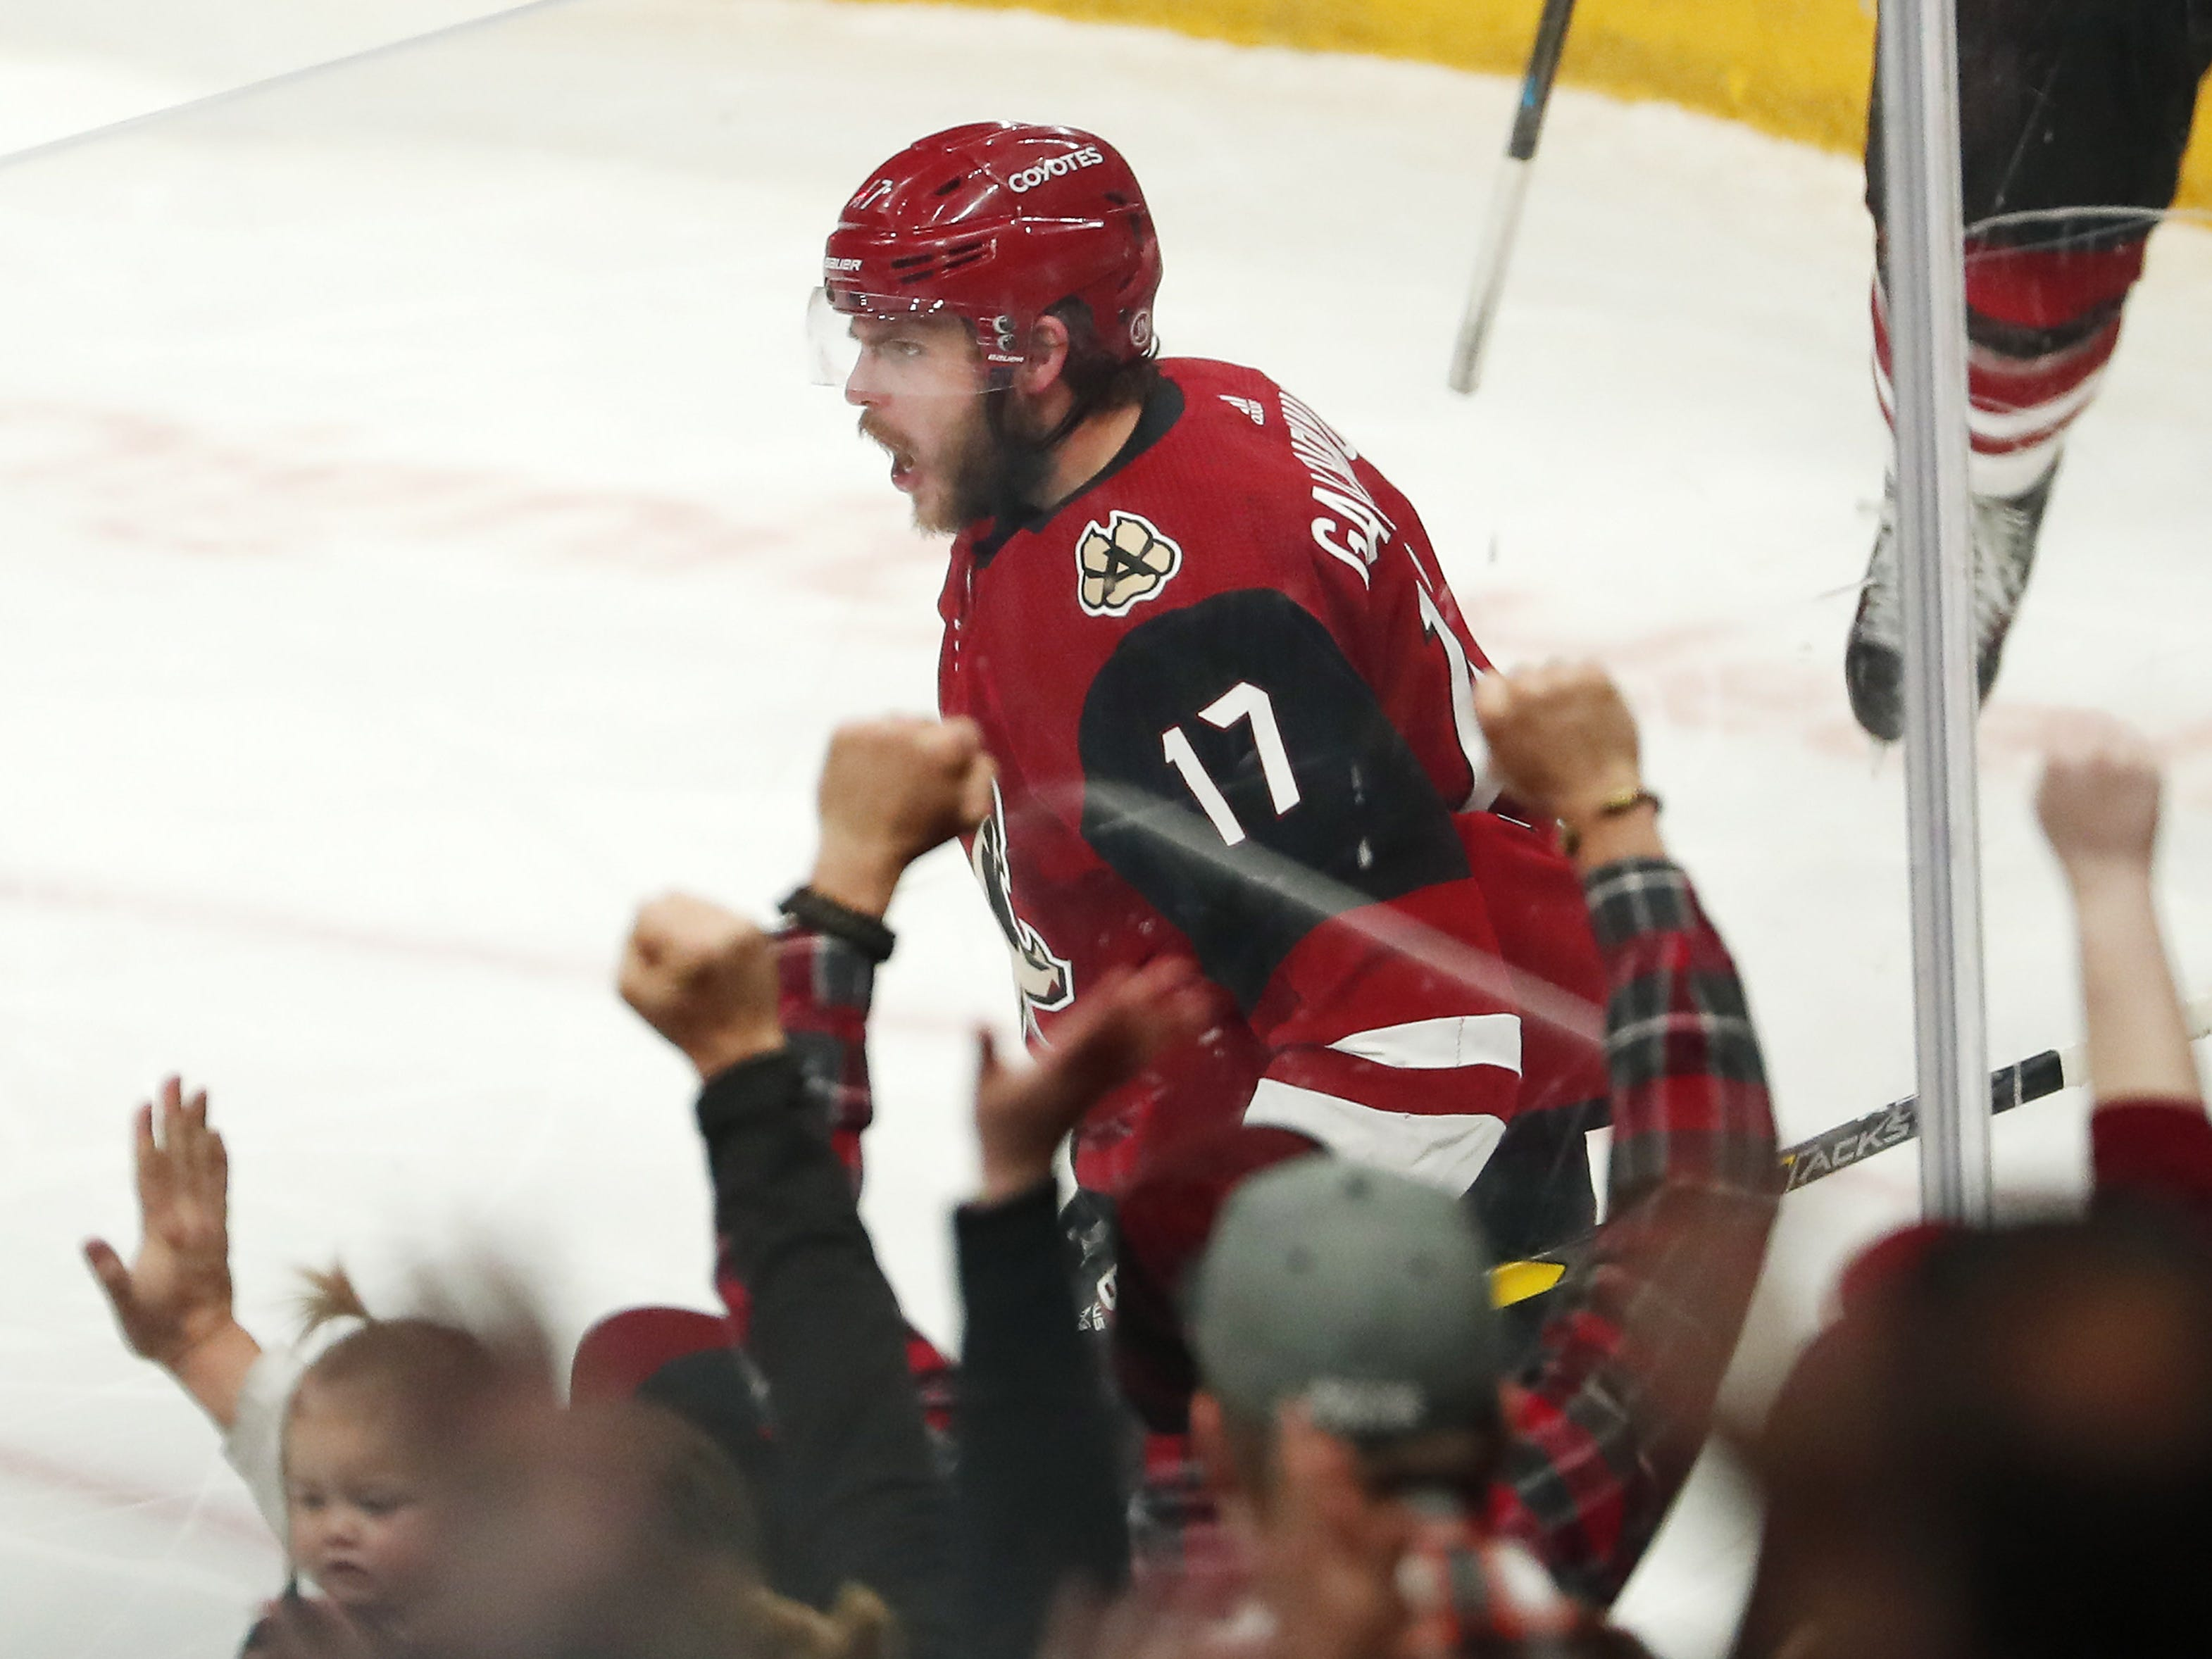 Arizona Coyotes center Alex Galchenyuk (17) celebrates after scoring against the Minnesota Wild during the first period in Glendale March 31, 2019.